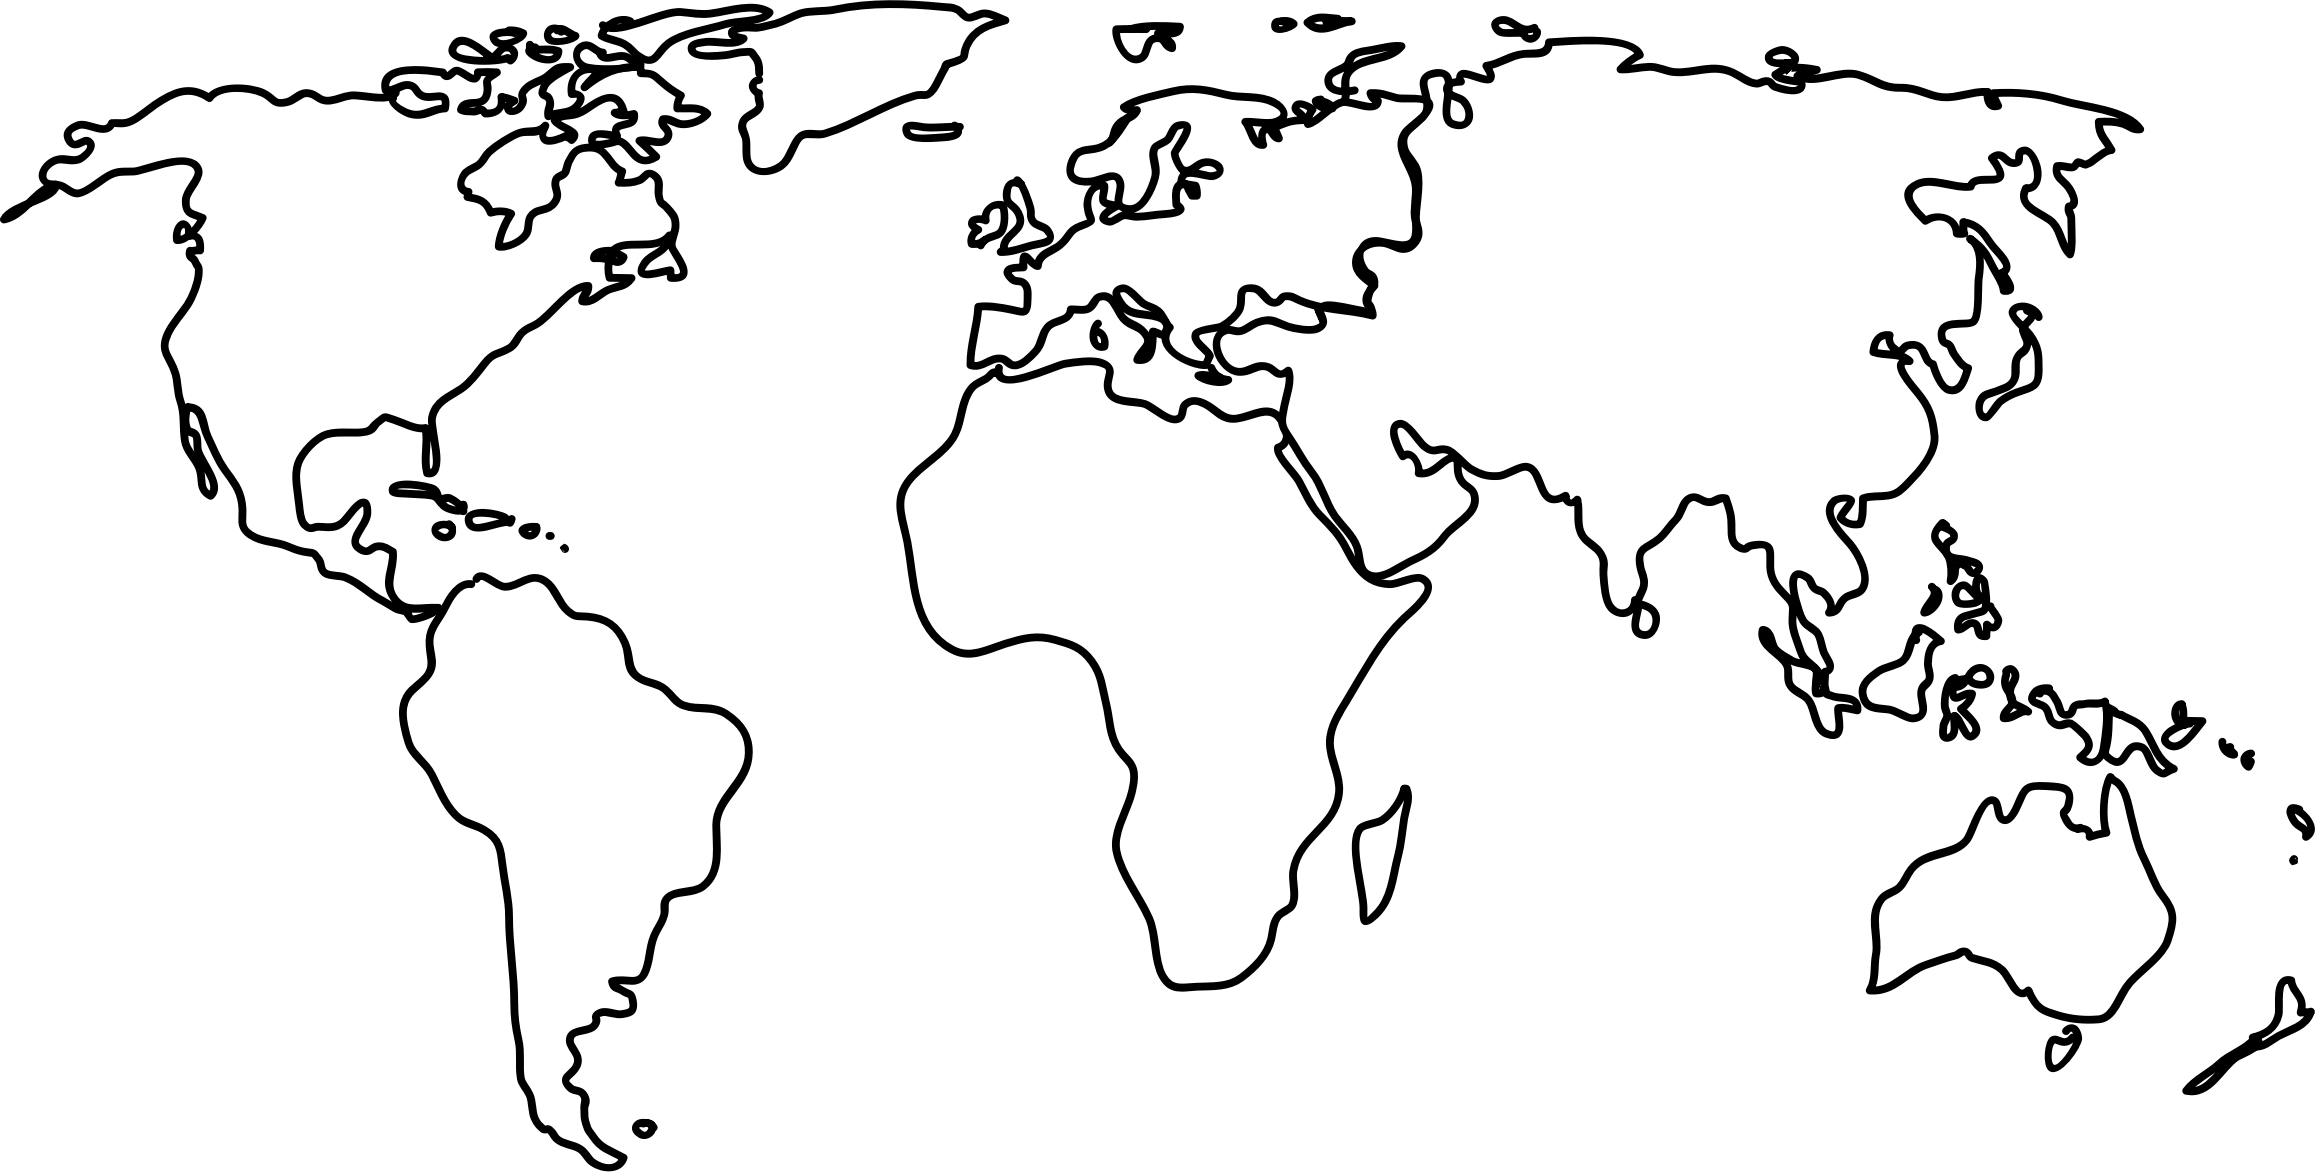 Line Art Map : World map by jkarthik outline on